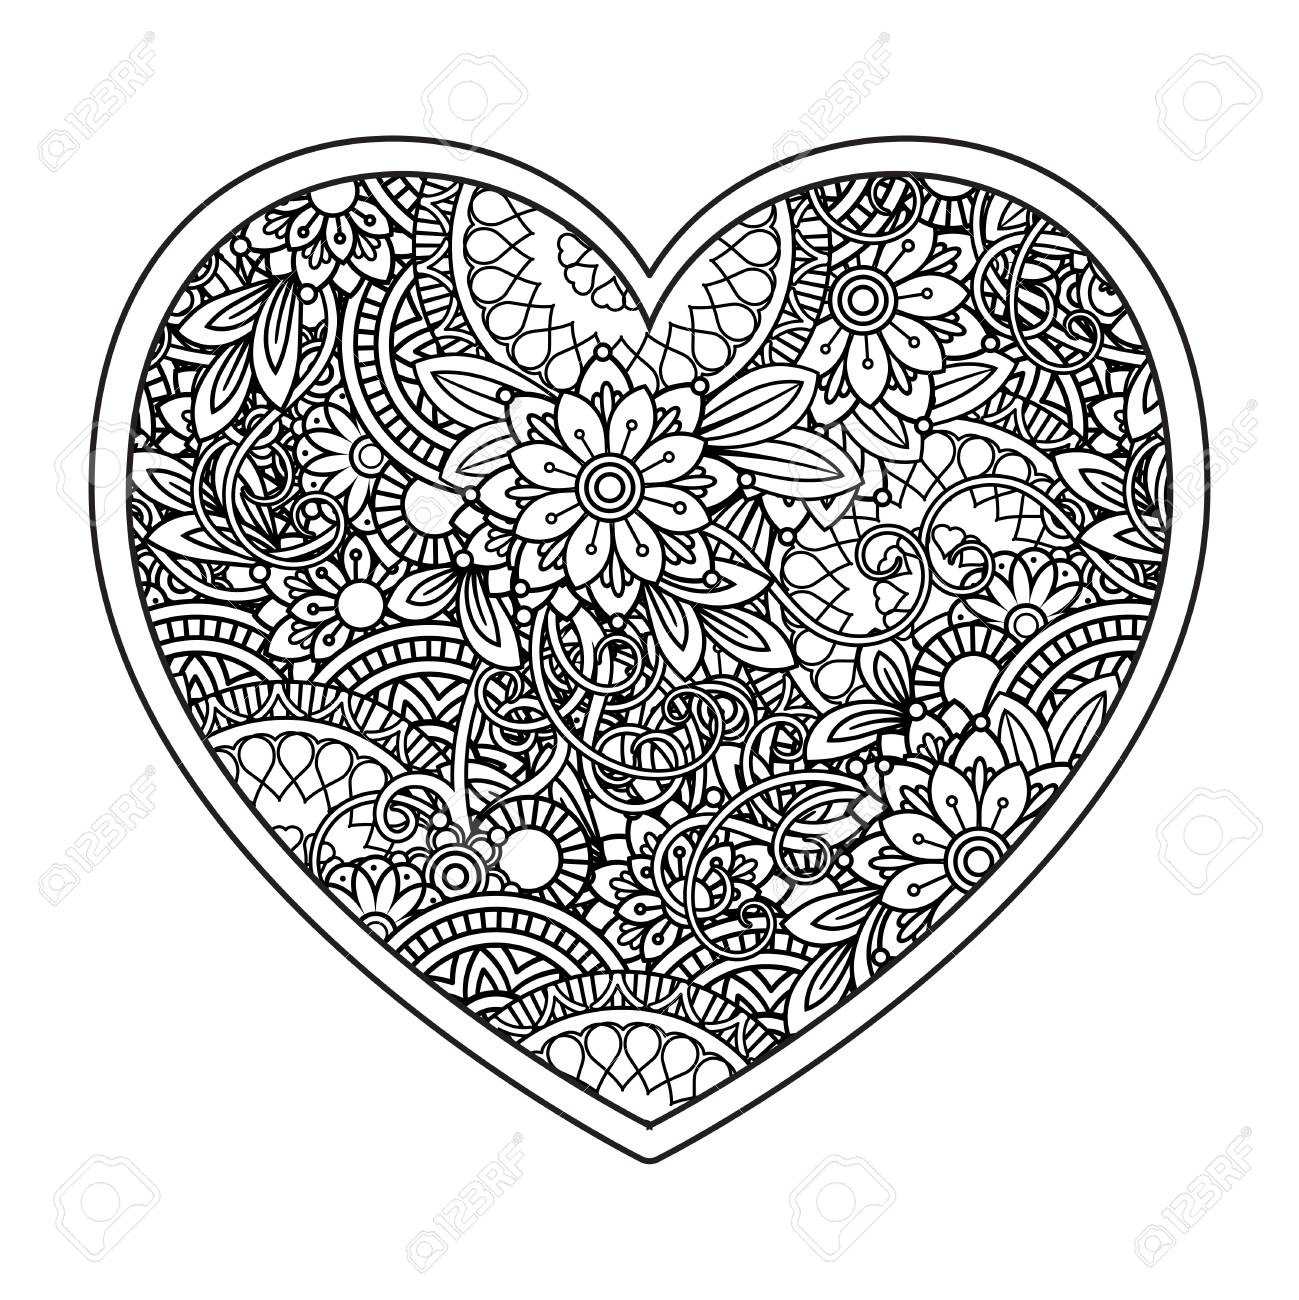 Heart With Floral Pattern Valentines Day Adult Coloring Page Royalty Free Cliparts Vectors And Stock Illustration Image 124882684